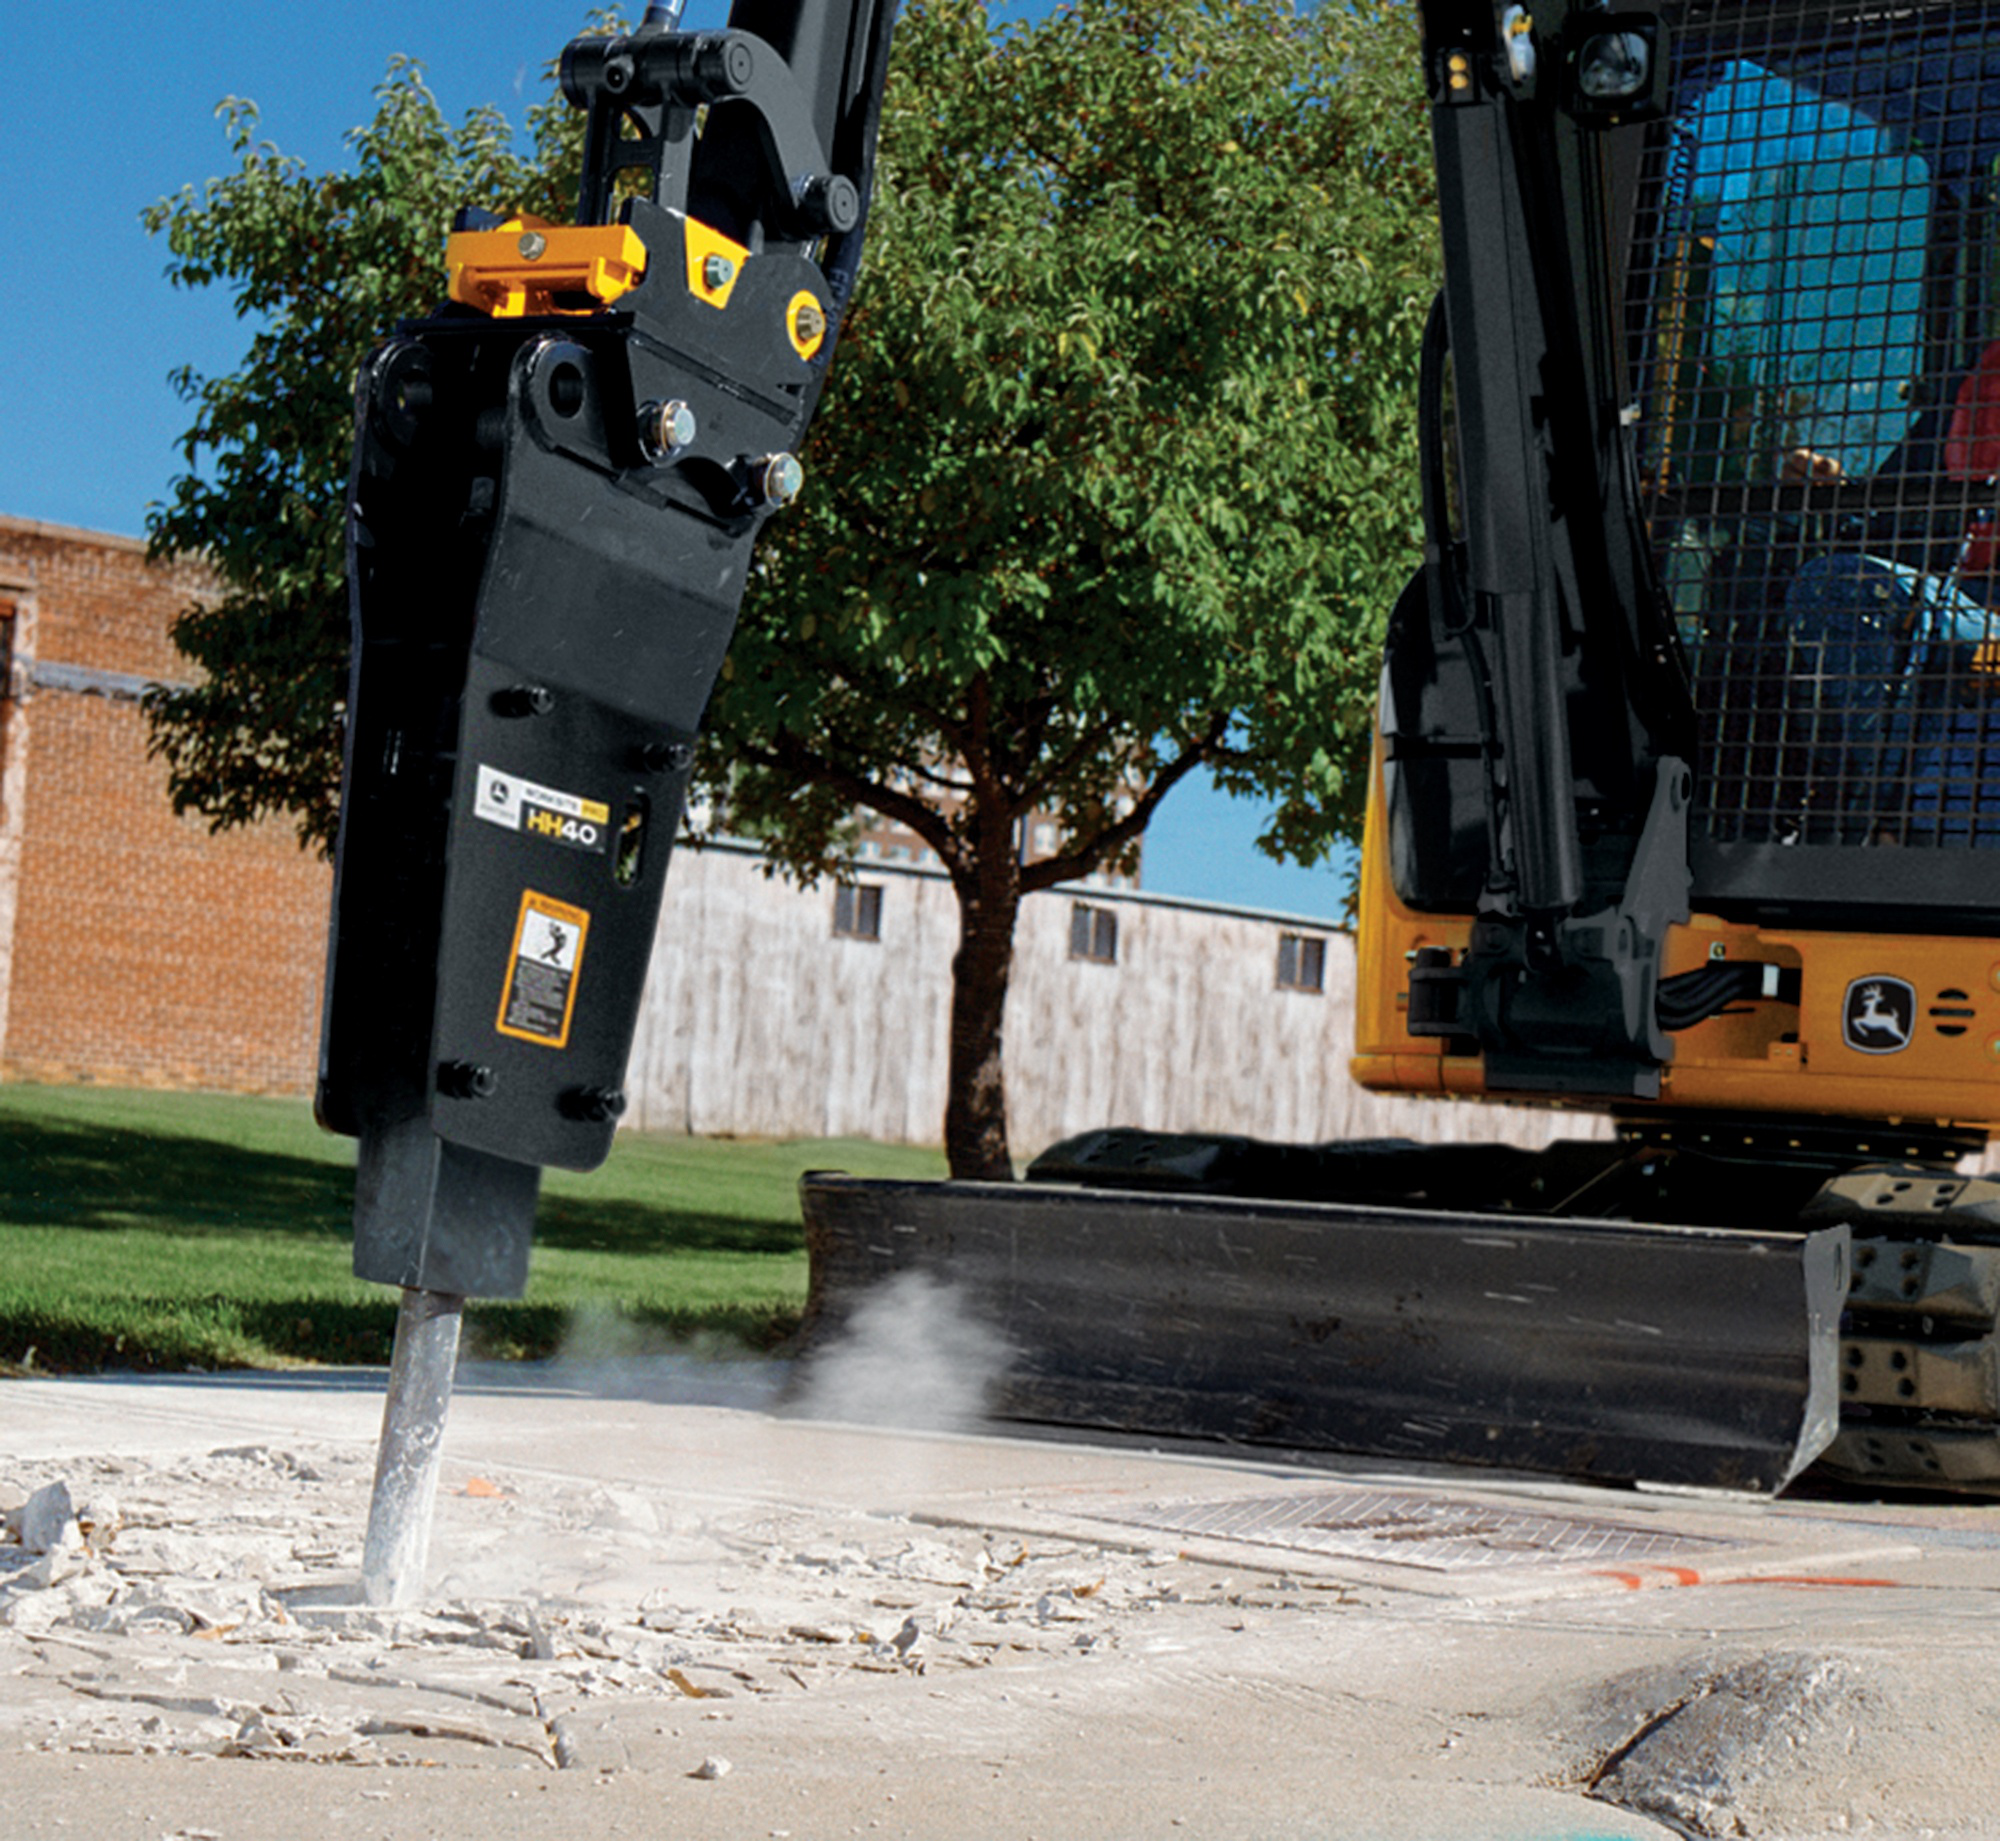 Attachment Roundup: Equipment attachments you can't forget